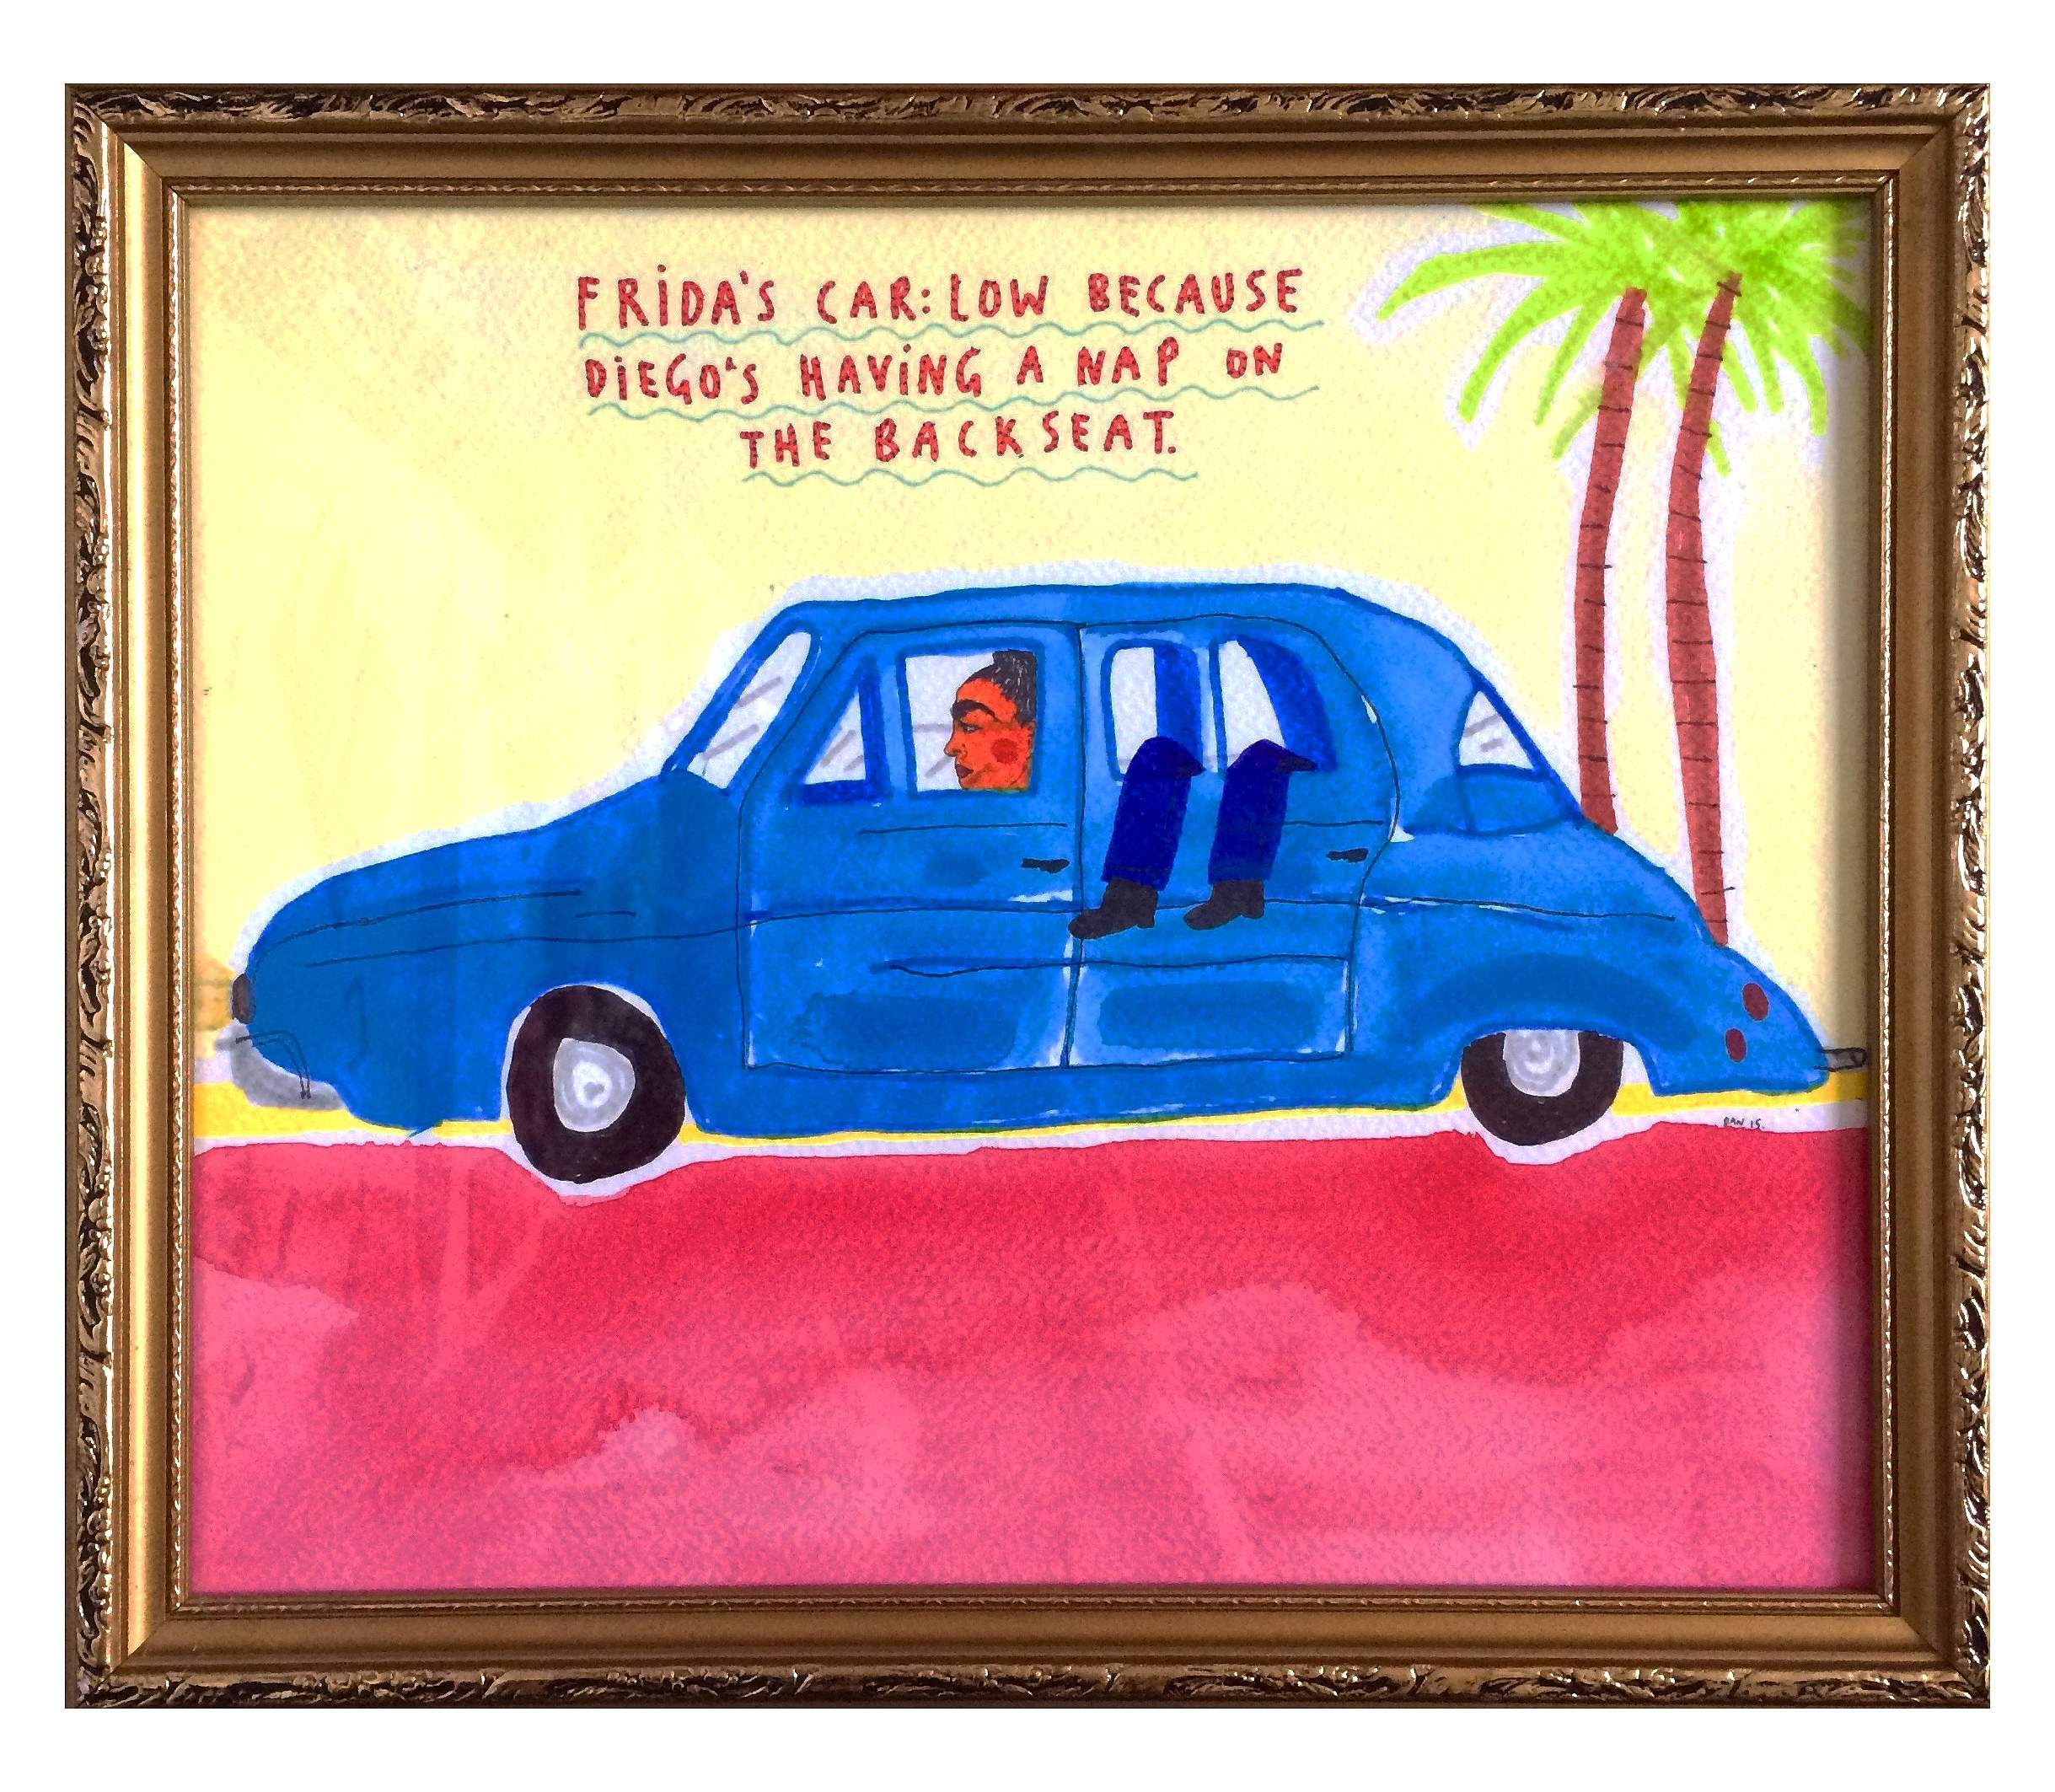 Frida's car low because Diego's having a nap on the backseat. 29 x 33 cm.jpg